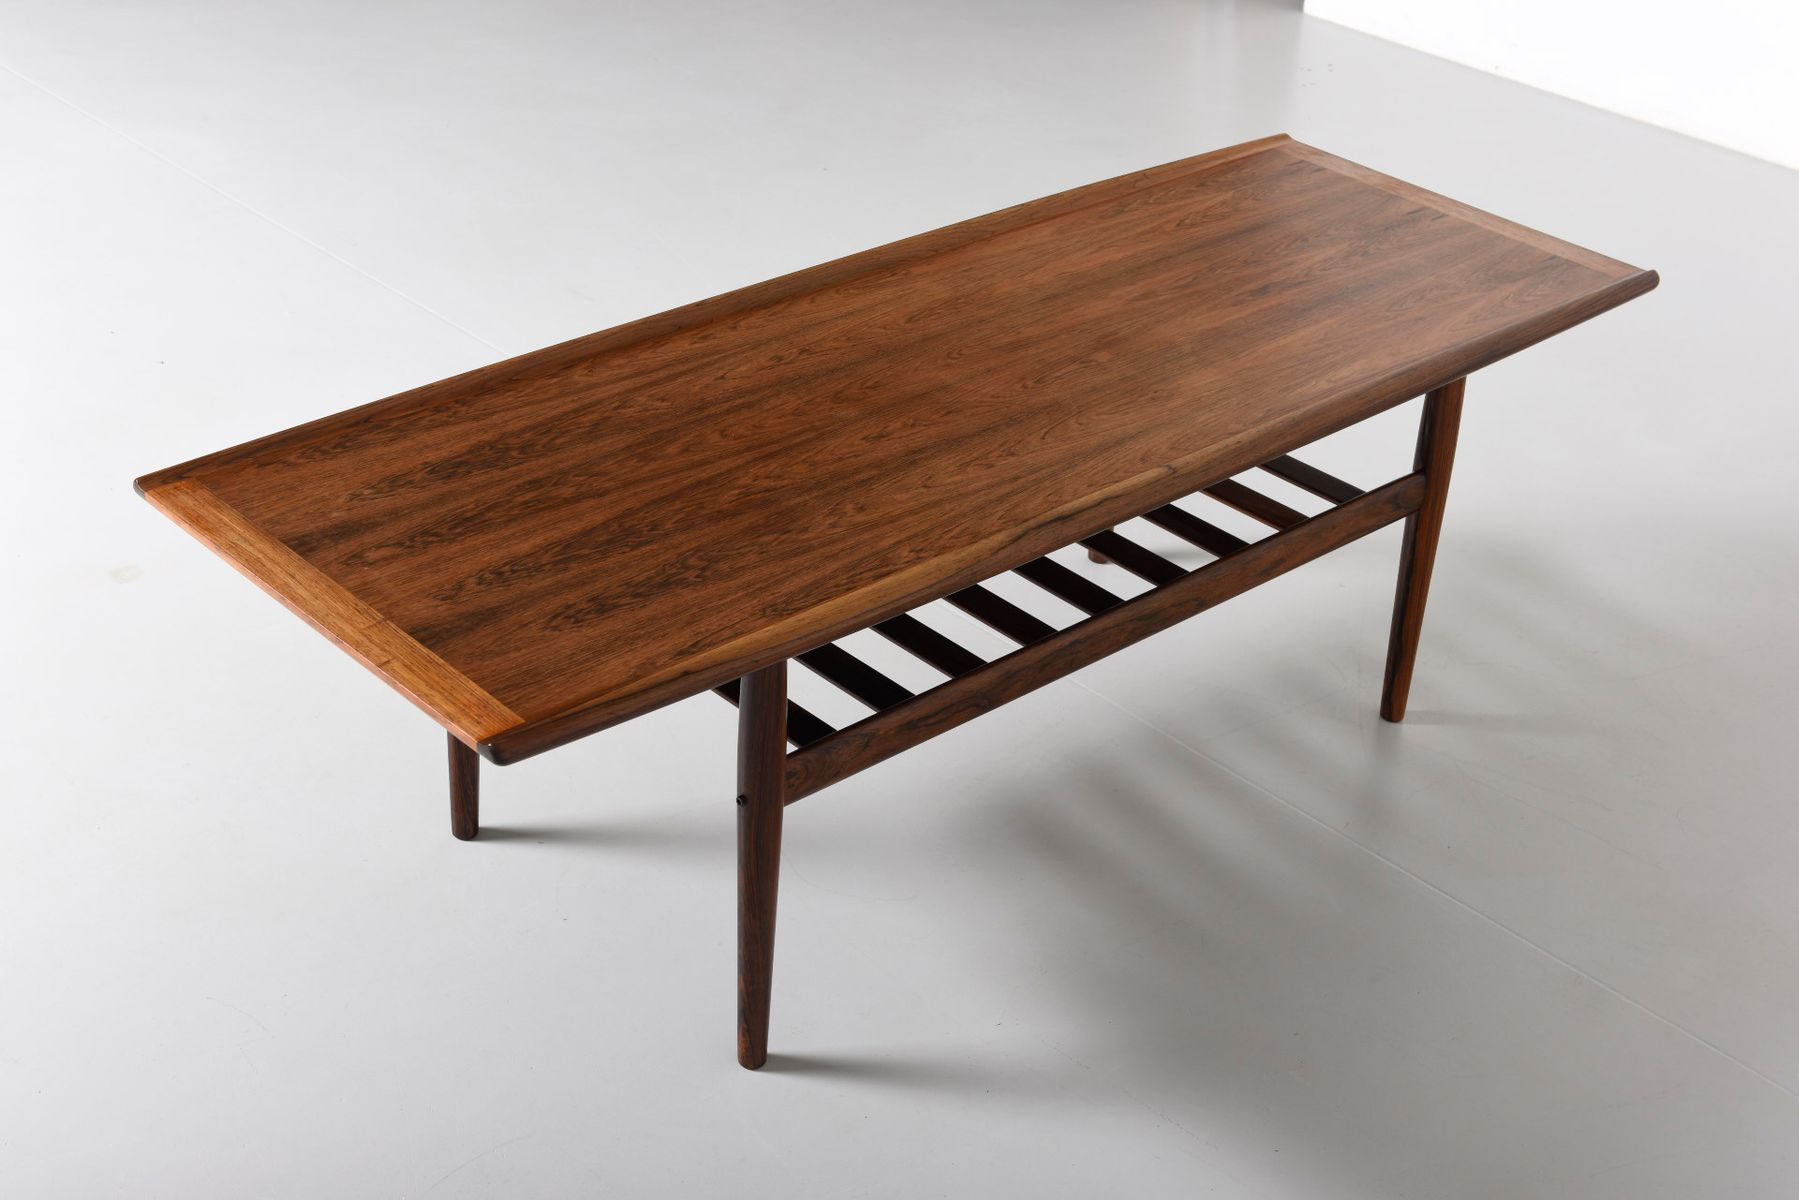 Danish Rosewood Low Coffee Table By Grete Jalk For Glostrup M Belfabrik 1960s For Sale At Pamono